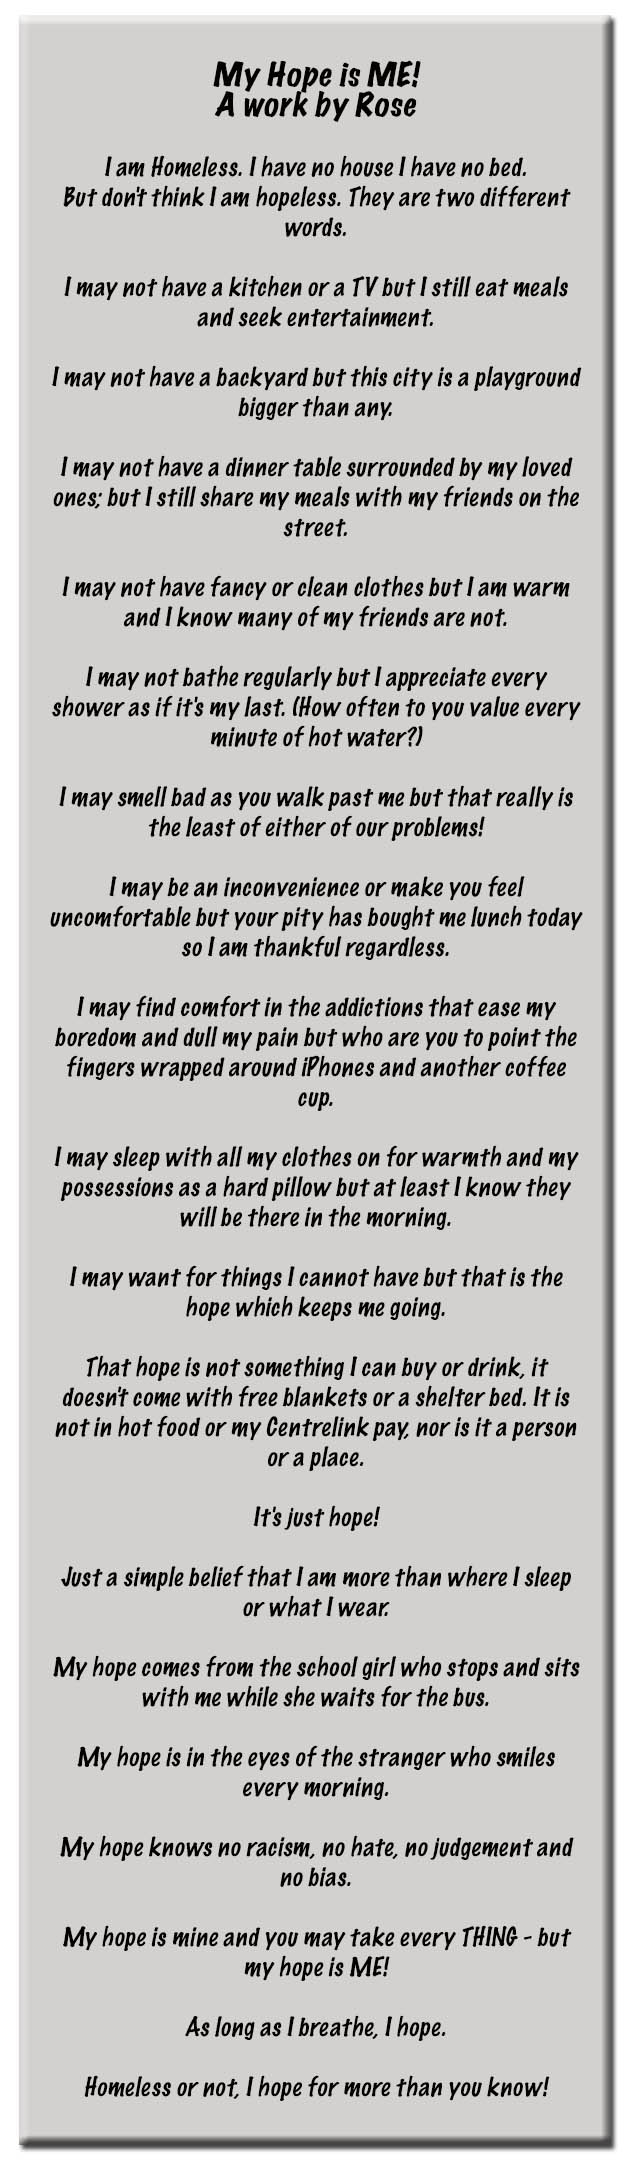 diary of a homeless person Runaways become homeless people real life stories of runaways  for more stories, poems and diary entries from homeless people and runaways, subscribe to our .